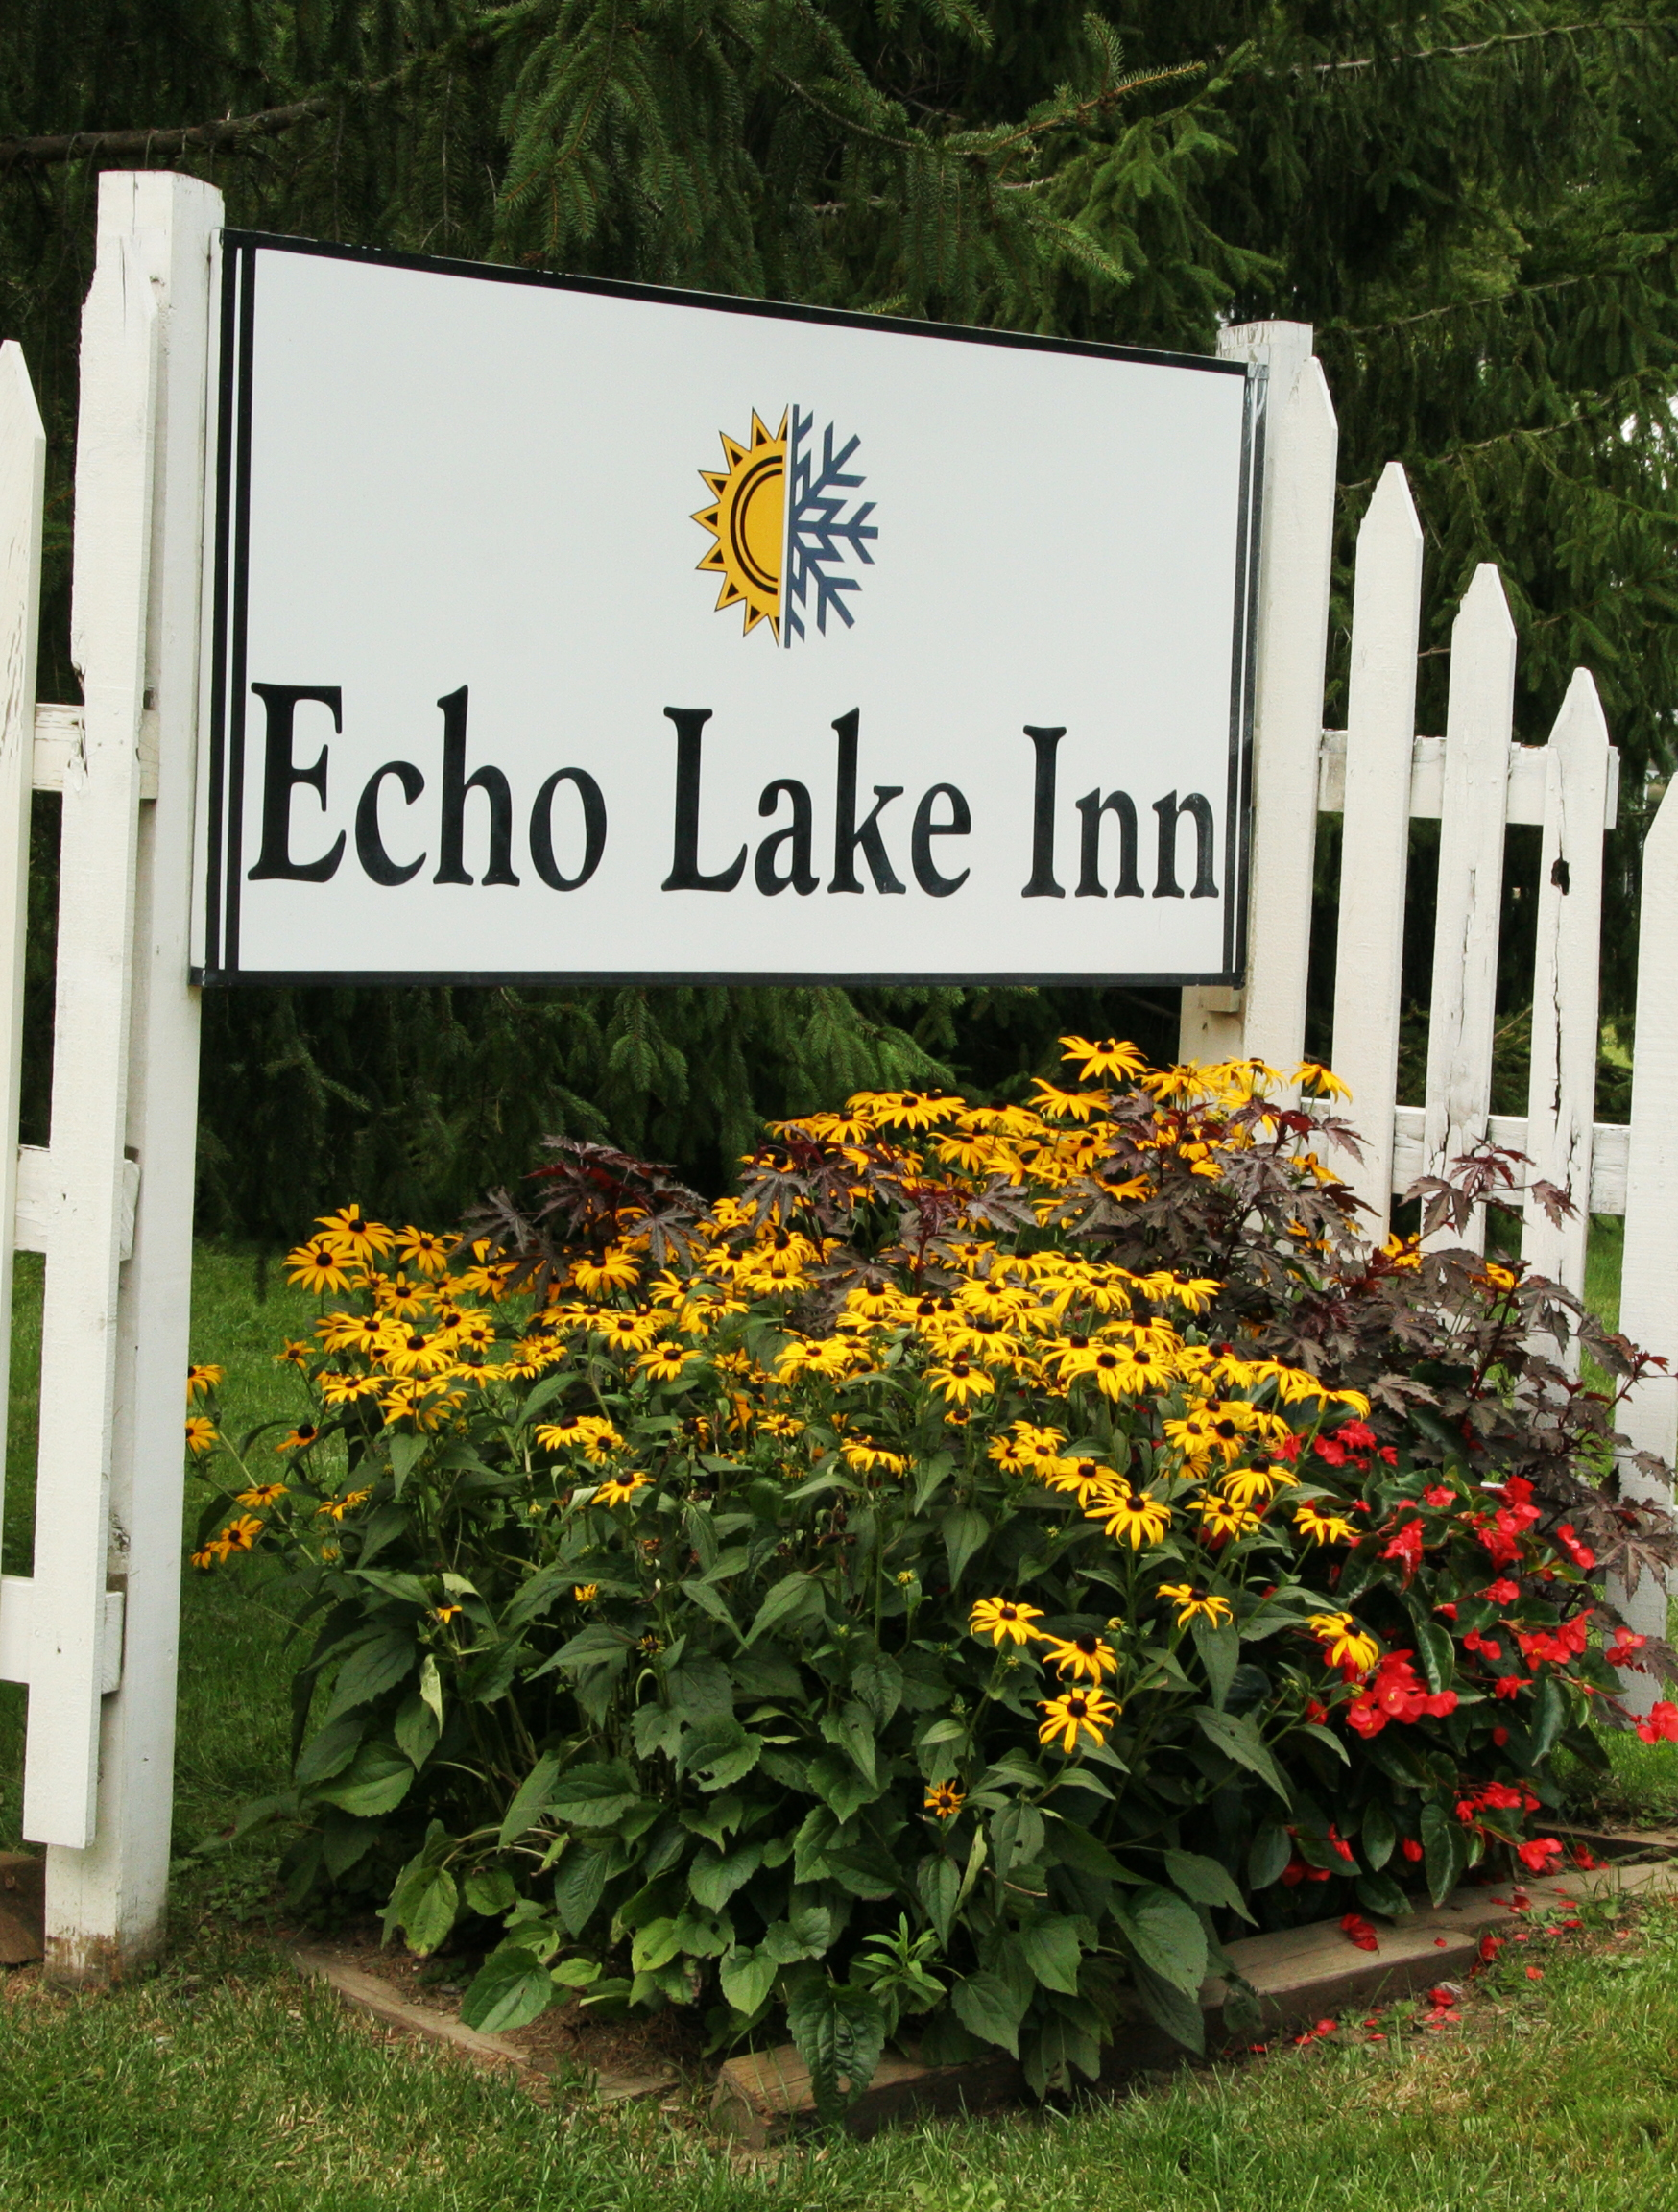 Echo lake inn sign